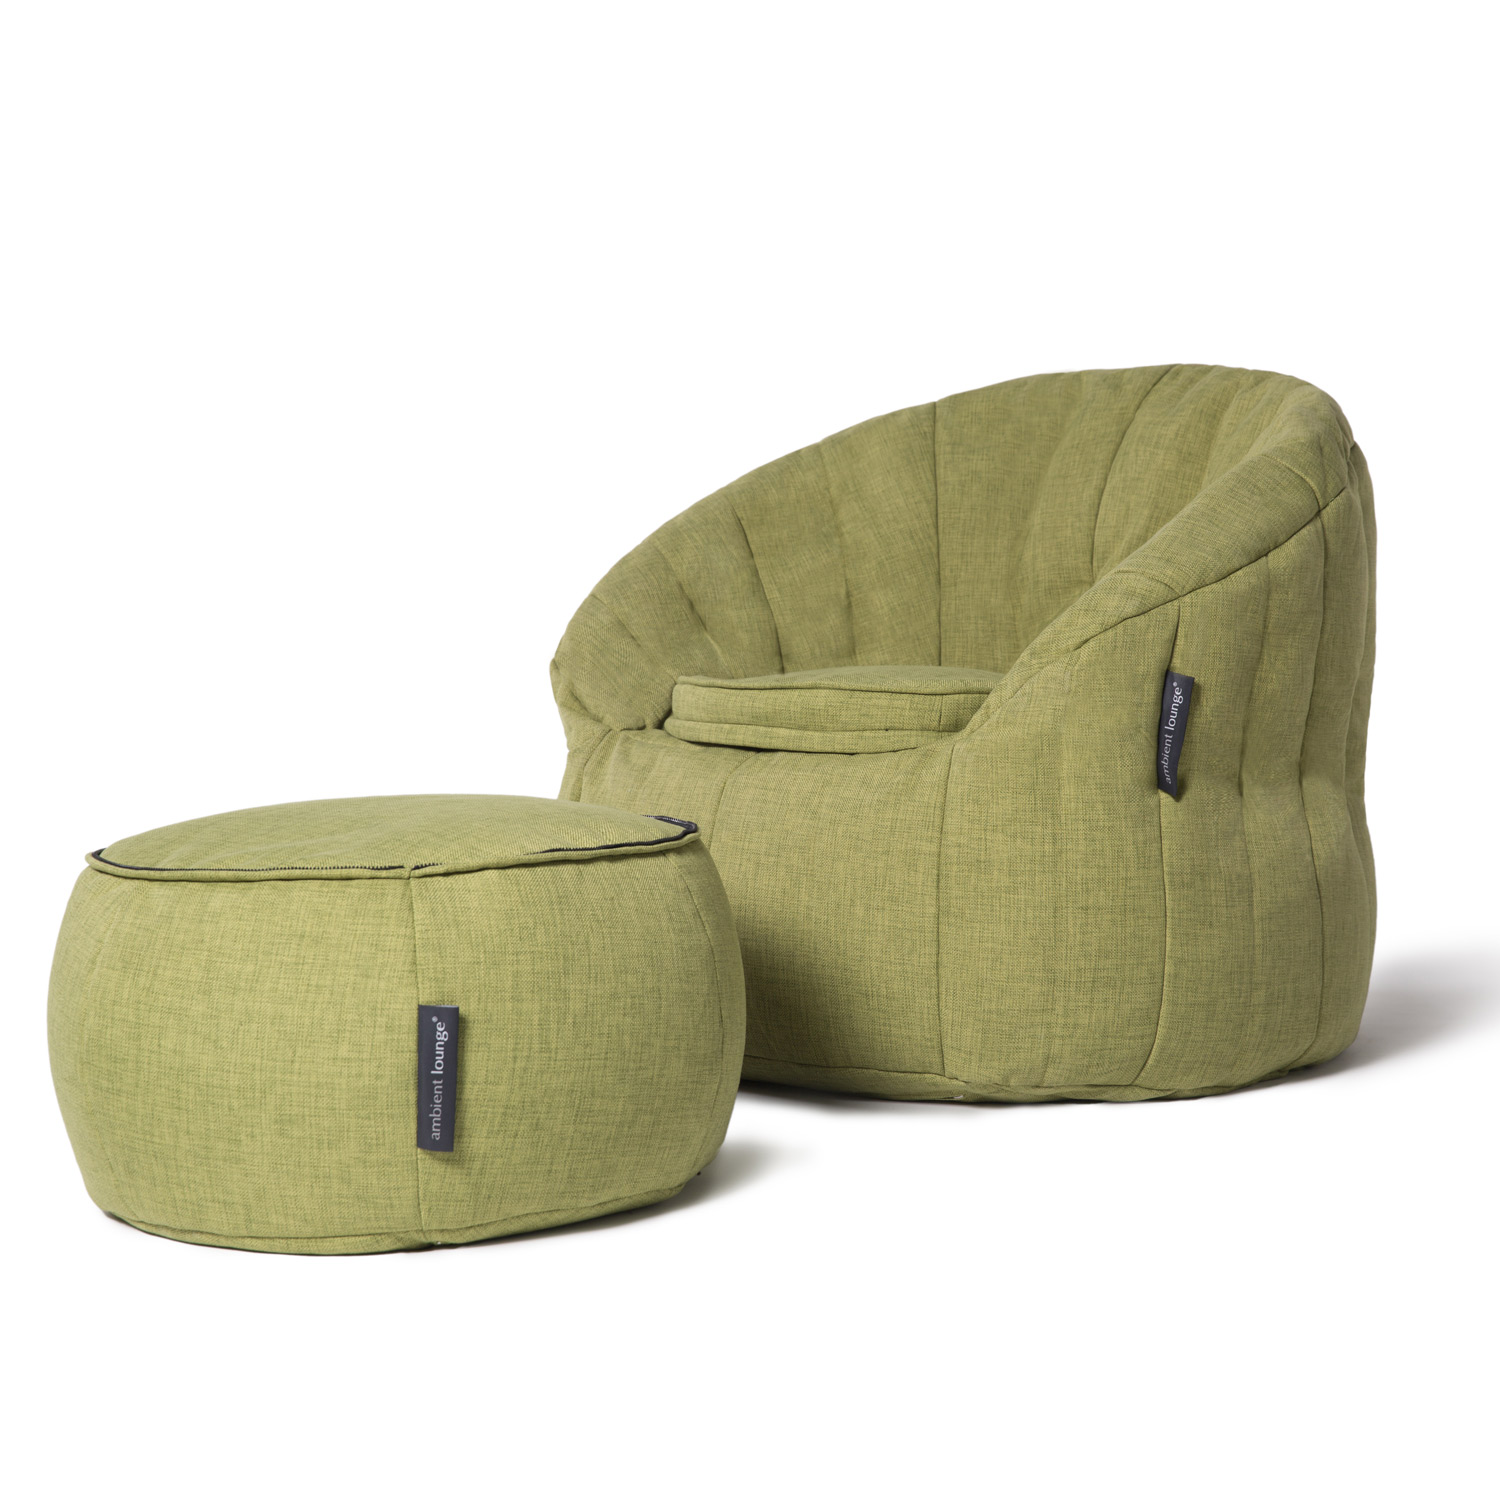 Interior Bean Bags Wing Ottoman Lime Citrus Bean Bag  : wing ottoman limeq from www.ambientlounge.com.au size 1500 x 1500 jpeg 302kB